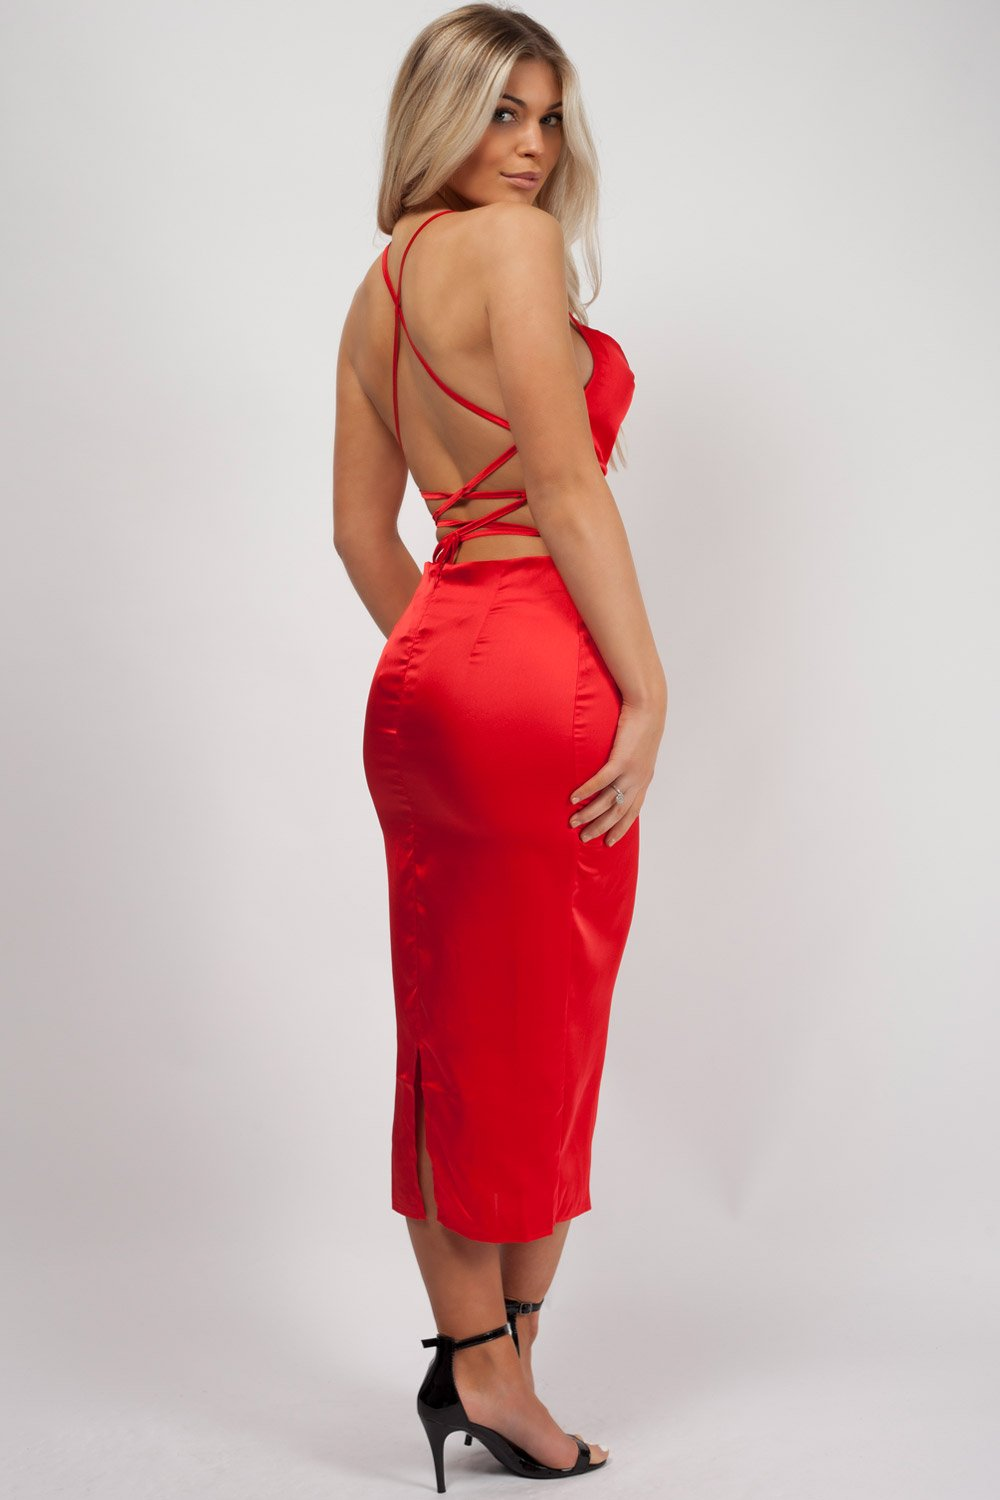 red midi dress styledup fashion